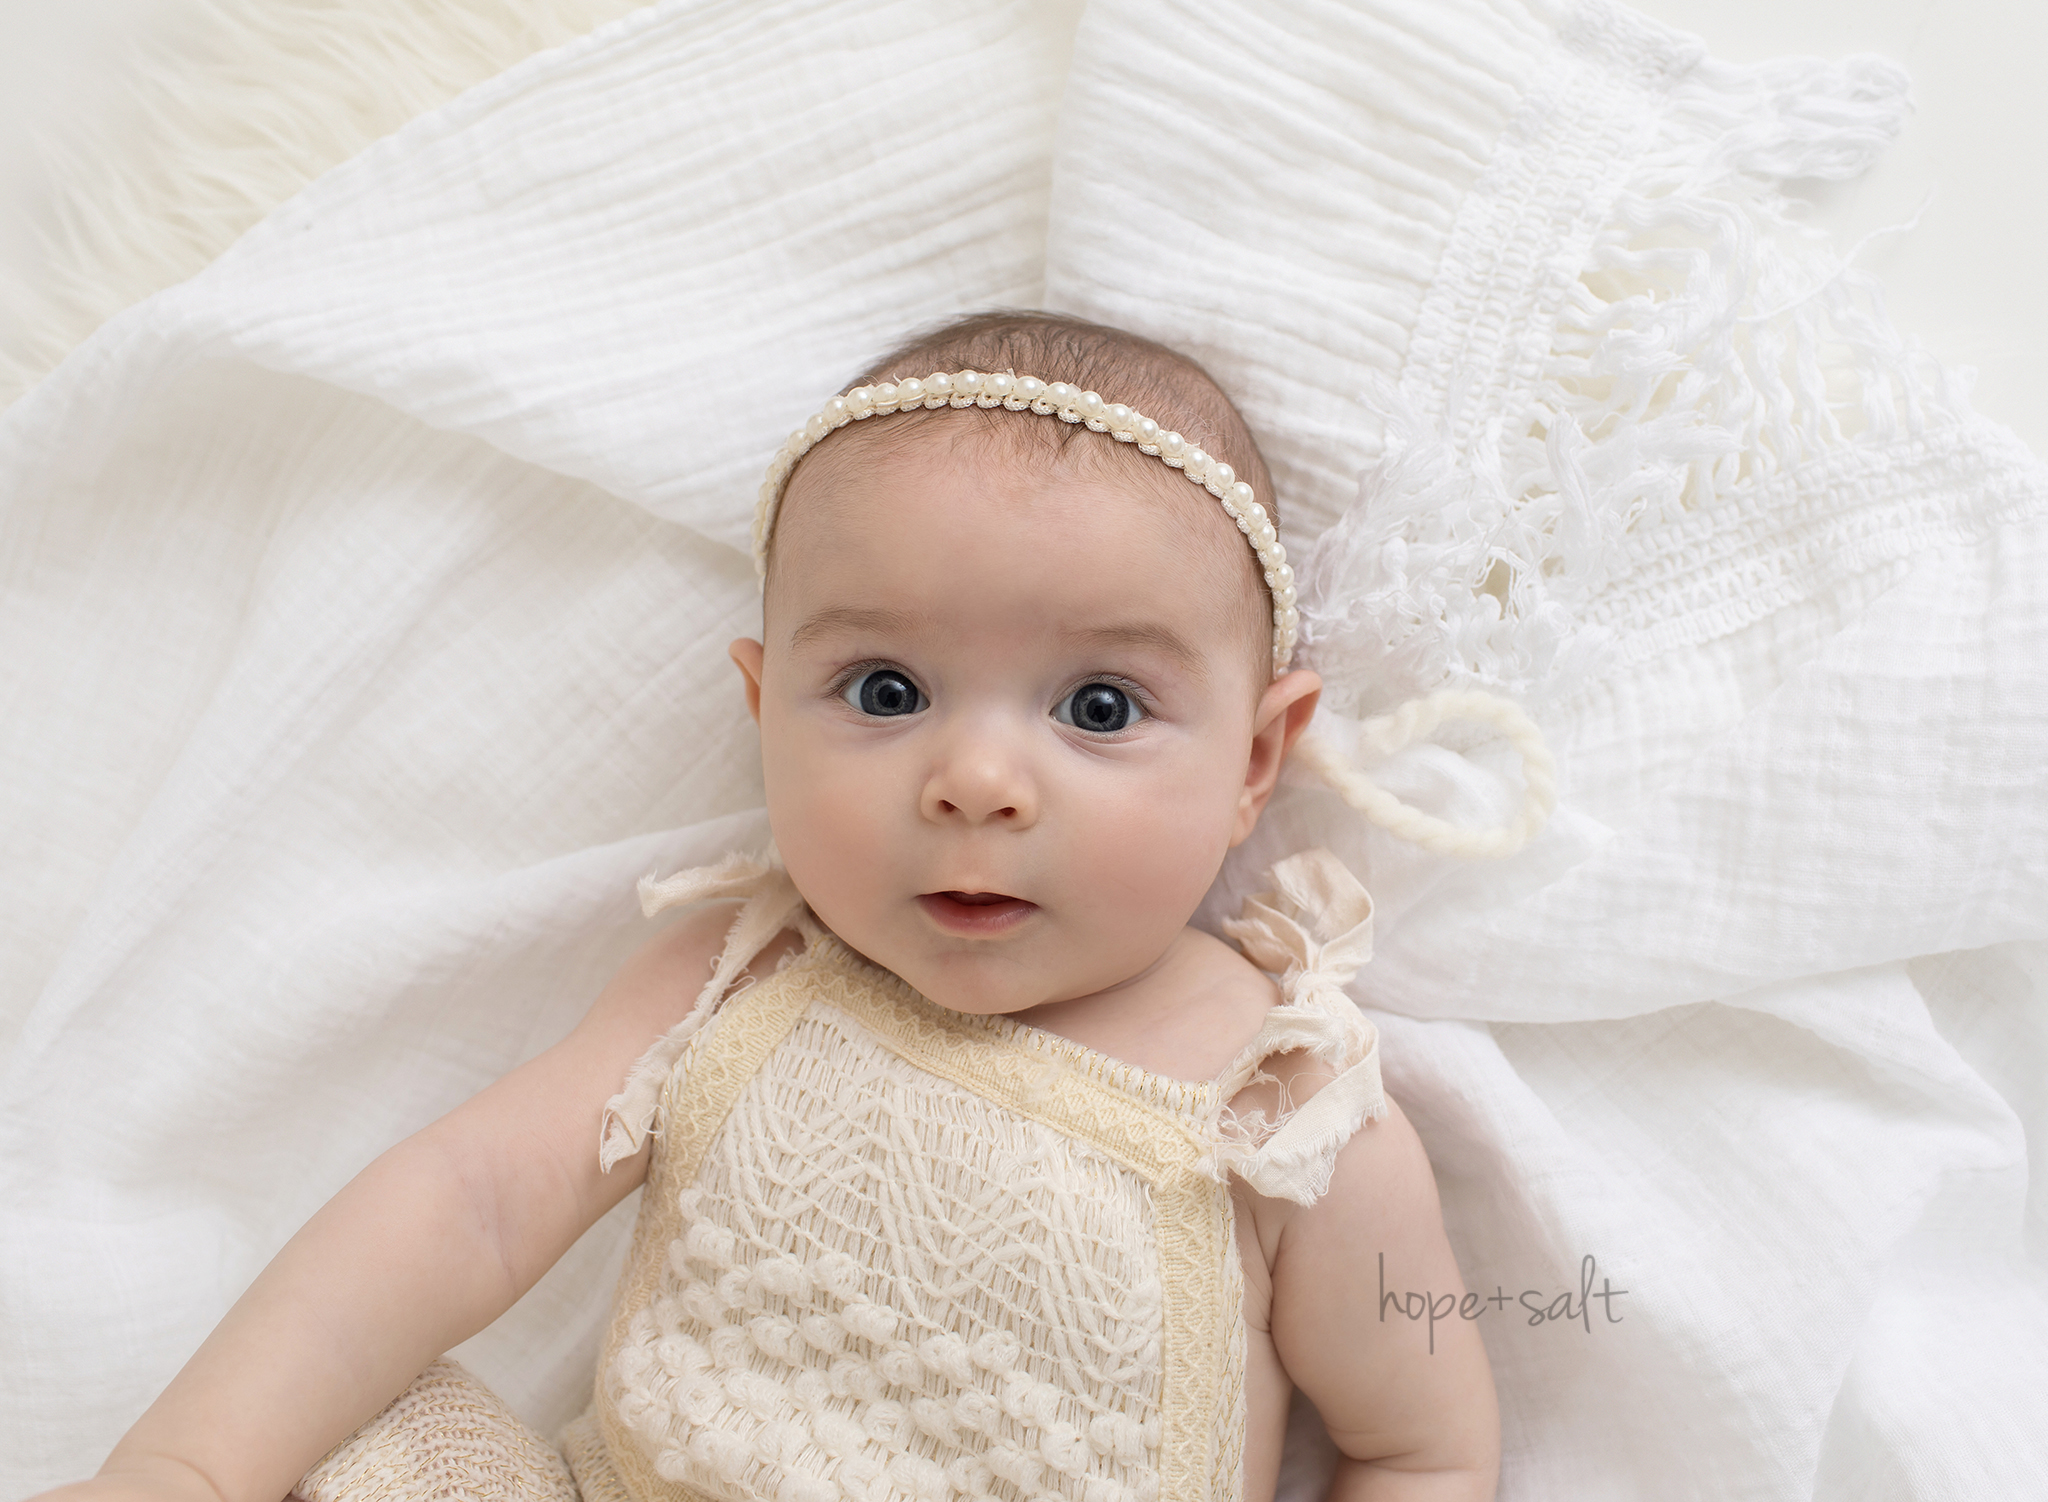 burlington baby photographer - 4 month old girl Quinn in studio session with all white blankets wrapped like a newborn